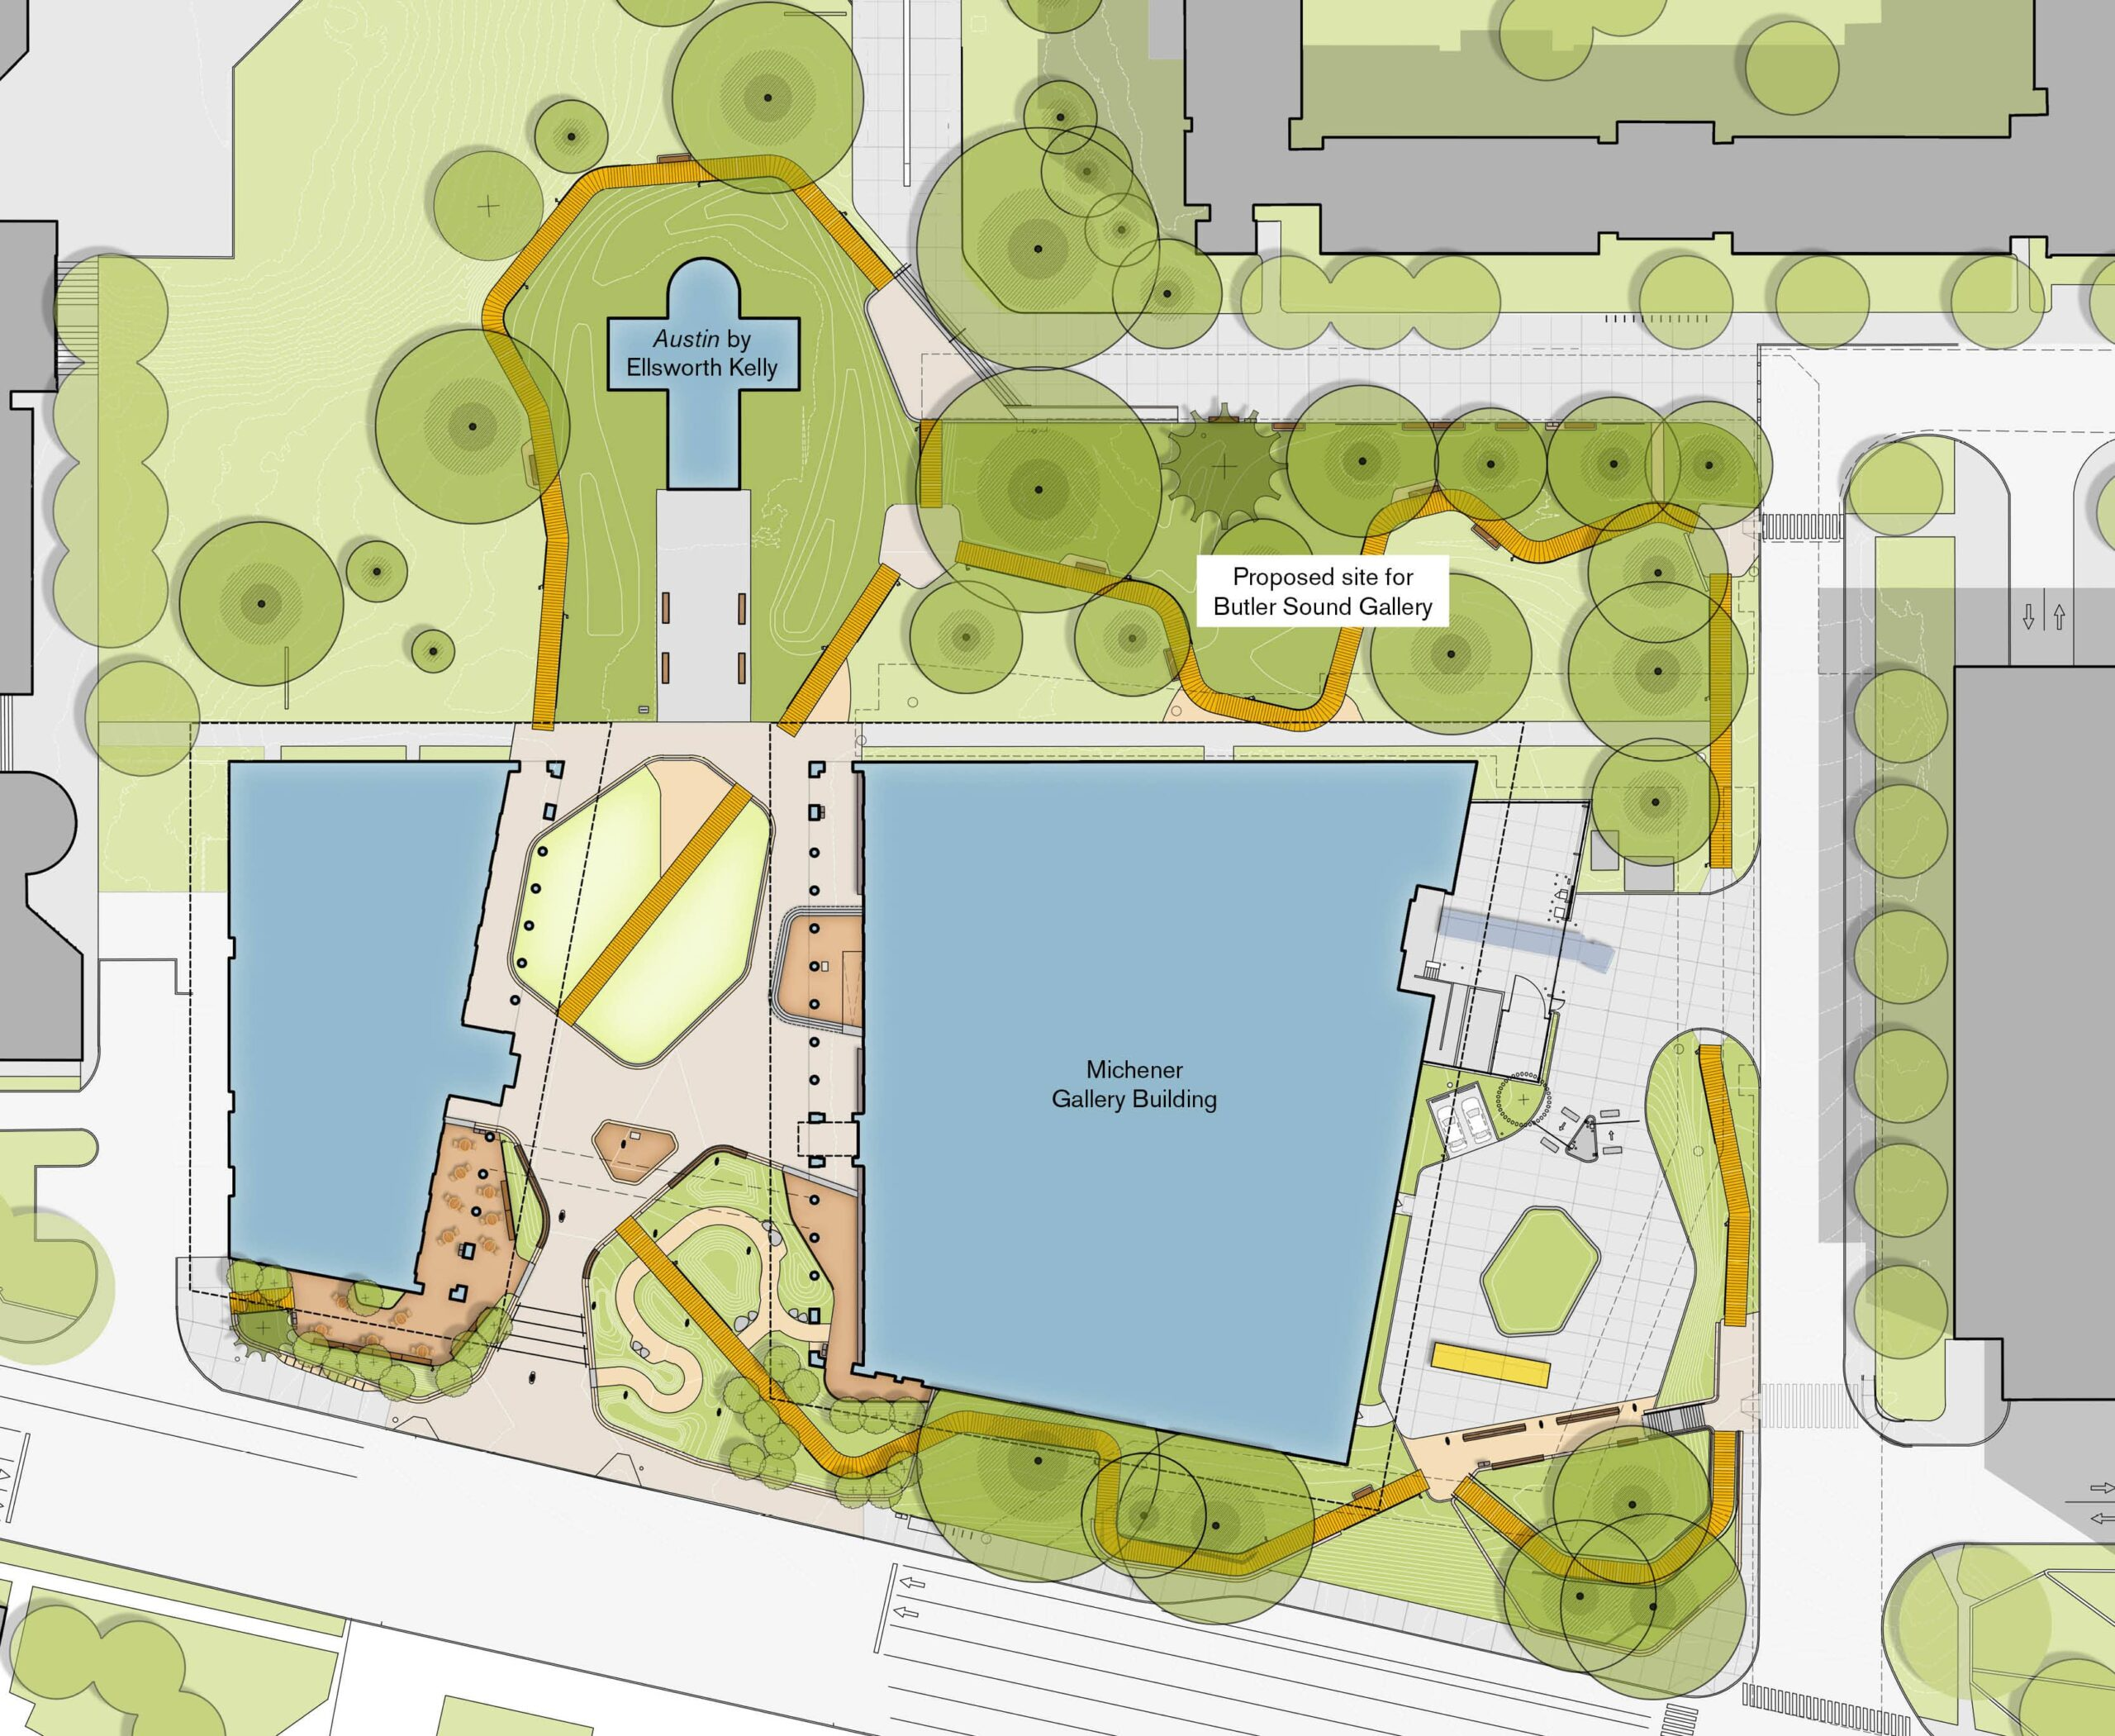 Plan with proposed site for Butler Sound Gallery